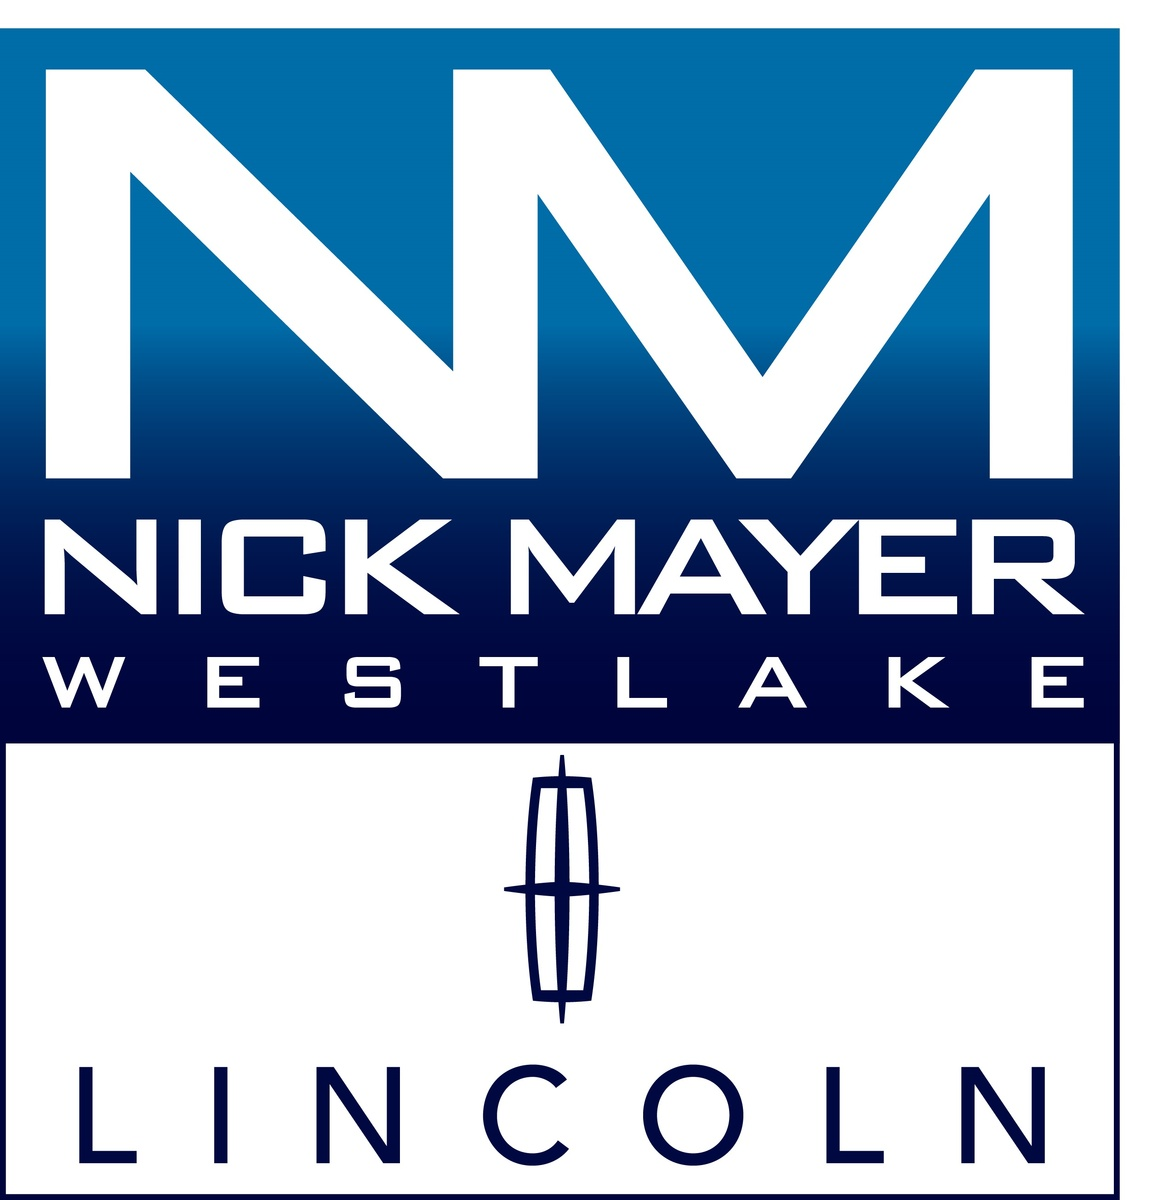 Nick Mayer Lincoln >> Nick Mayer Lincoln Westlake Oh Read Consumer Reviews Browse